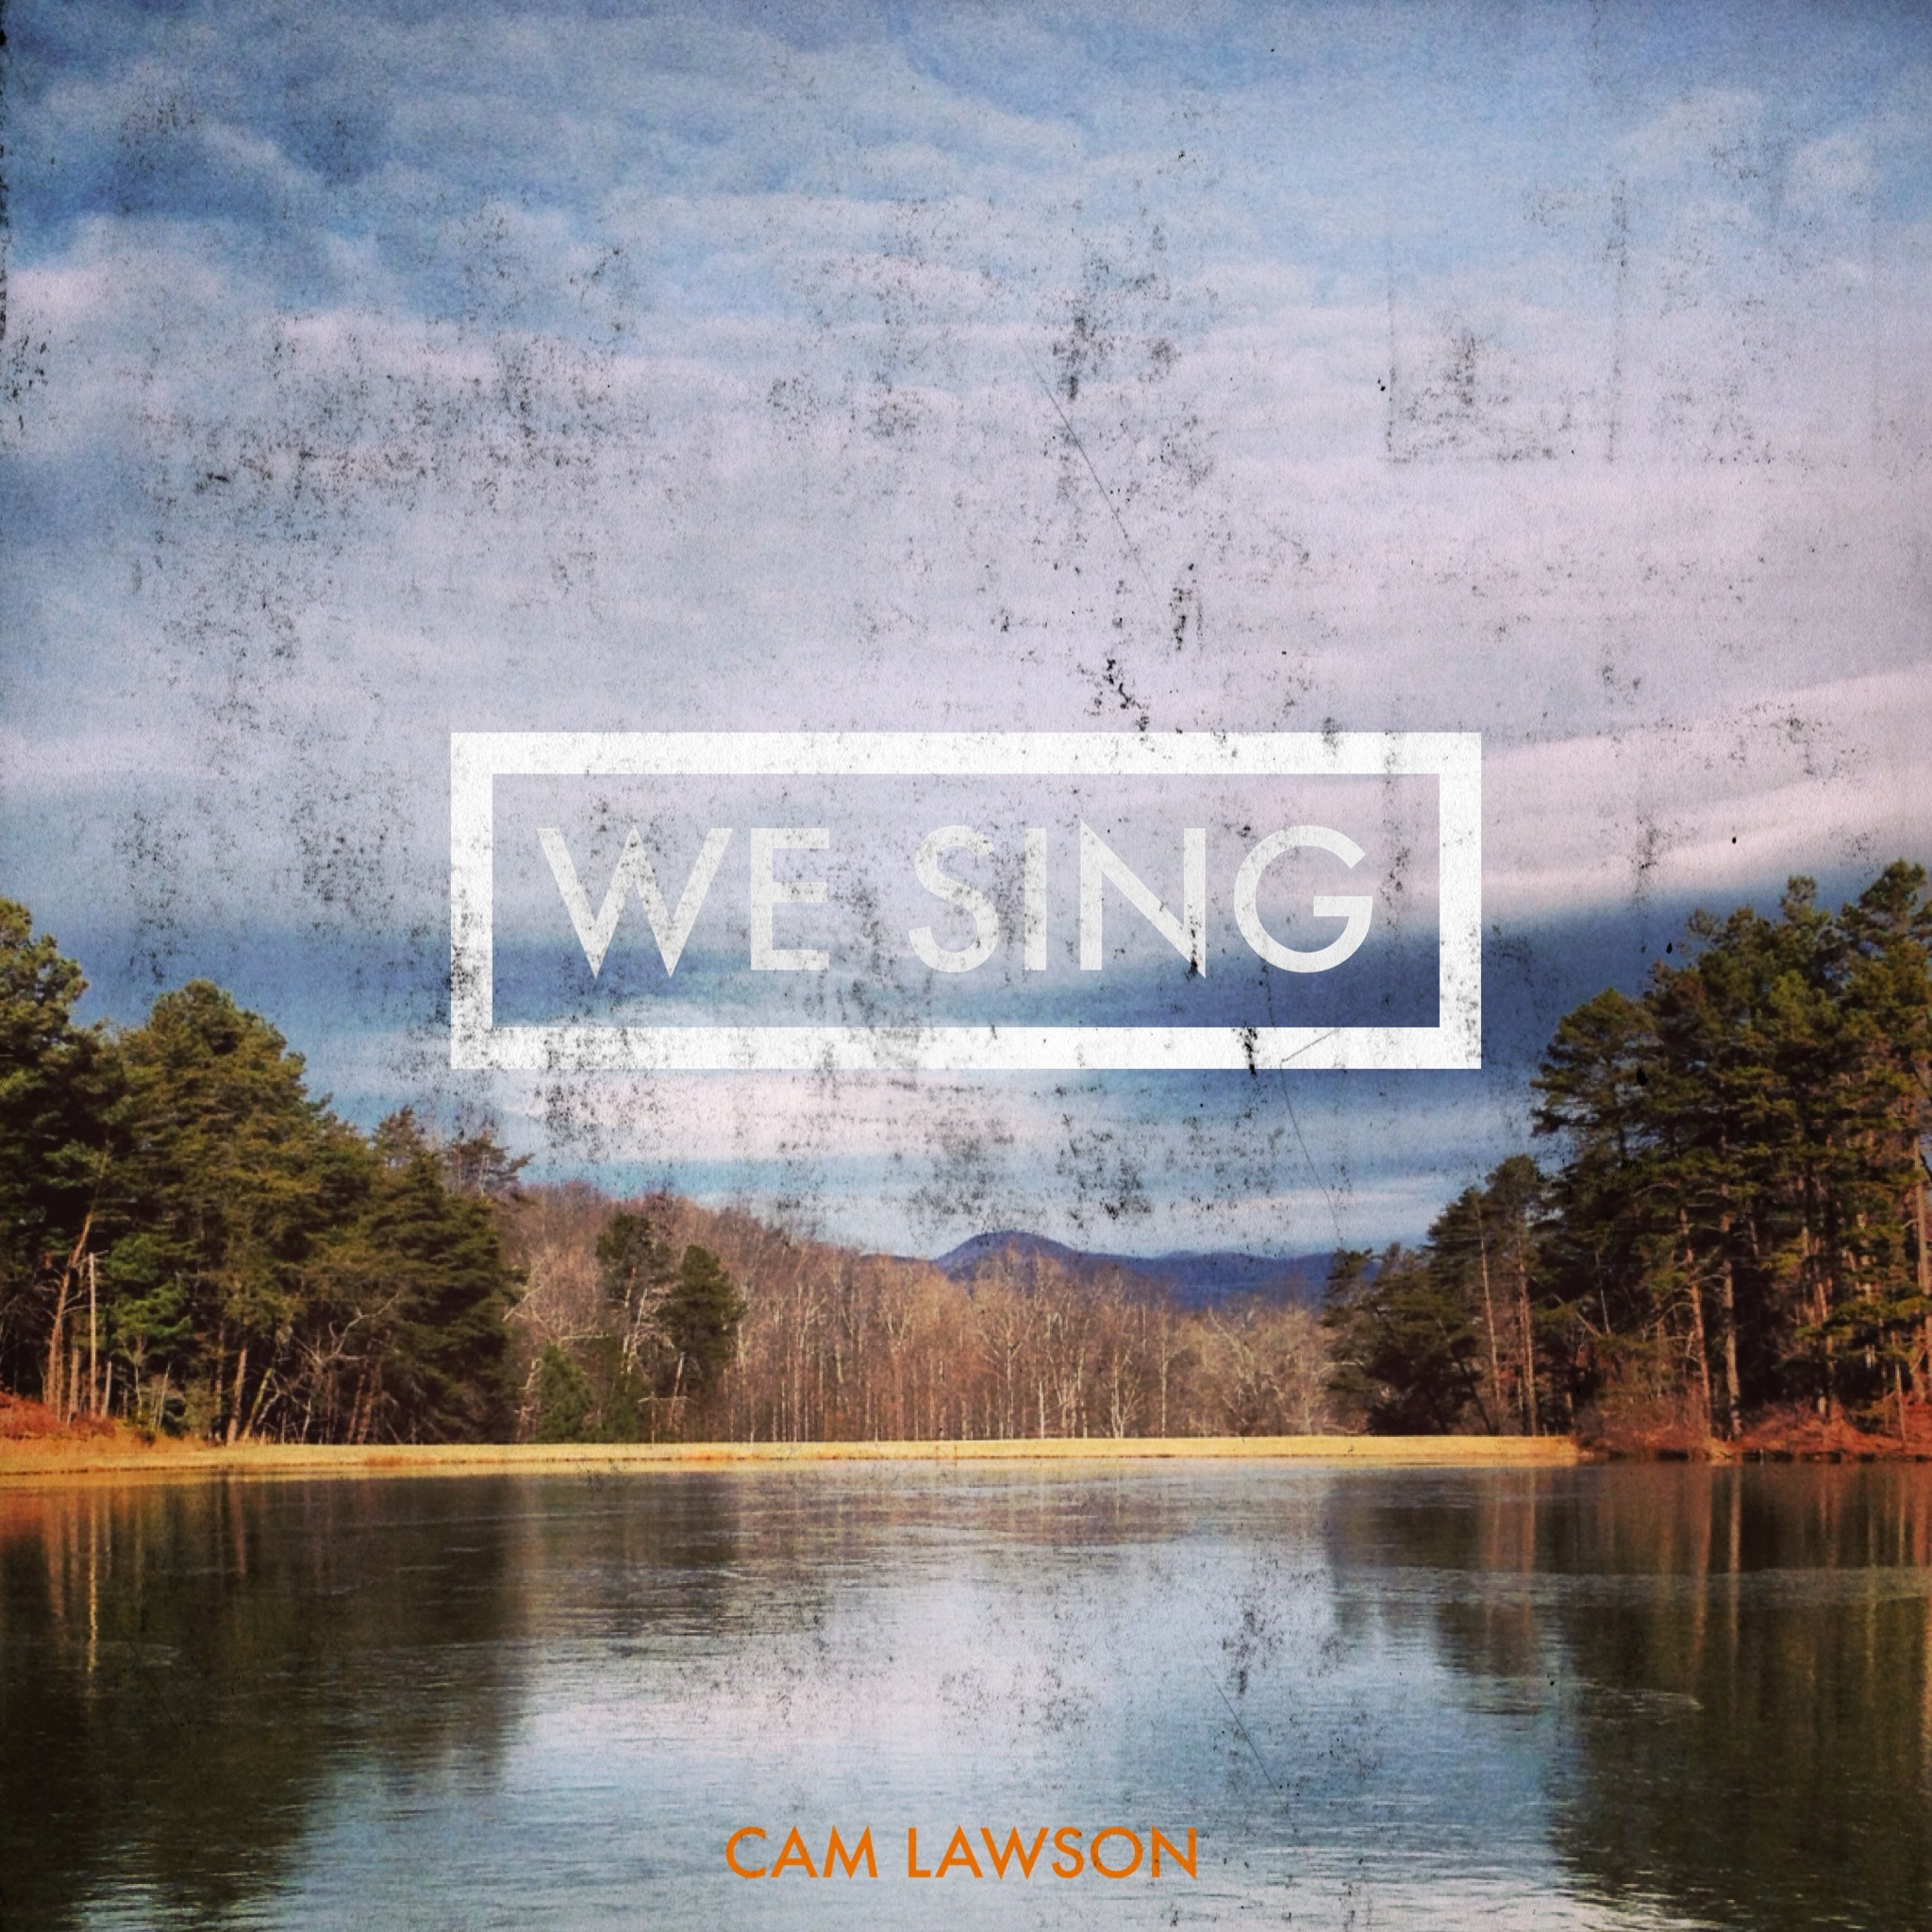 We Sing EP by Cam Lawson